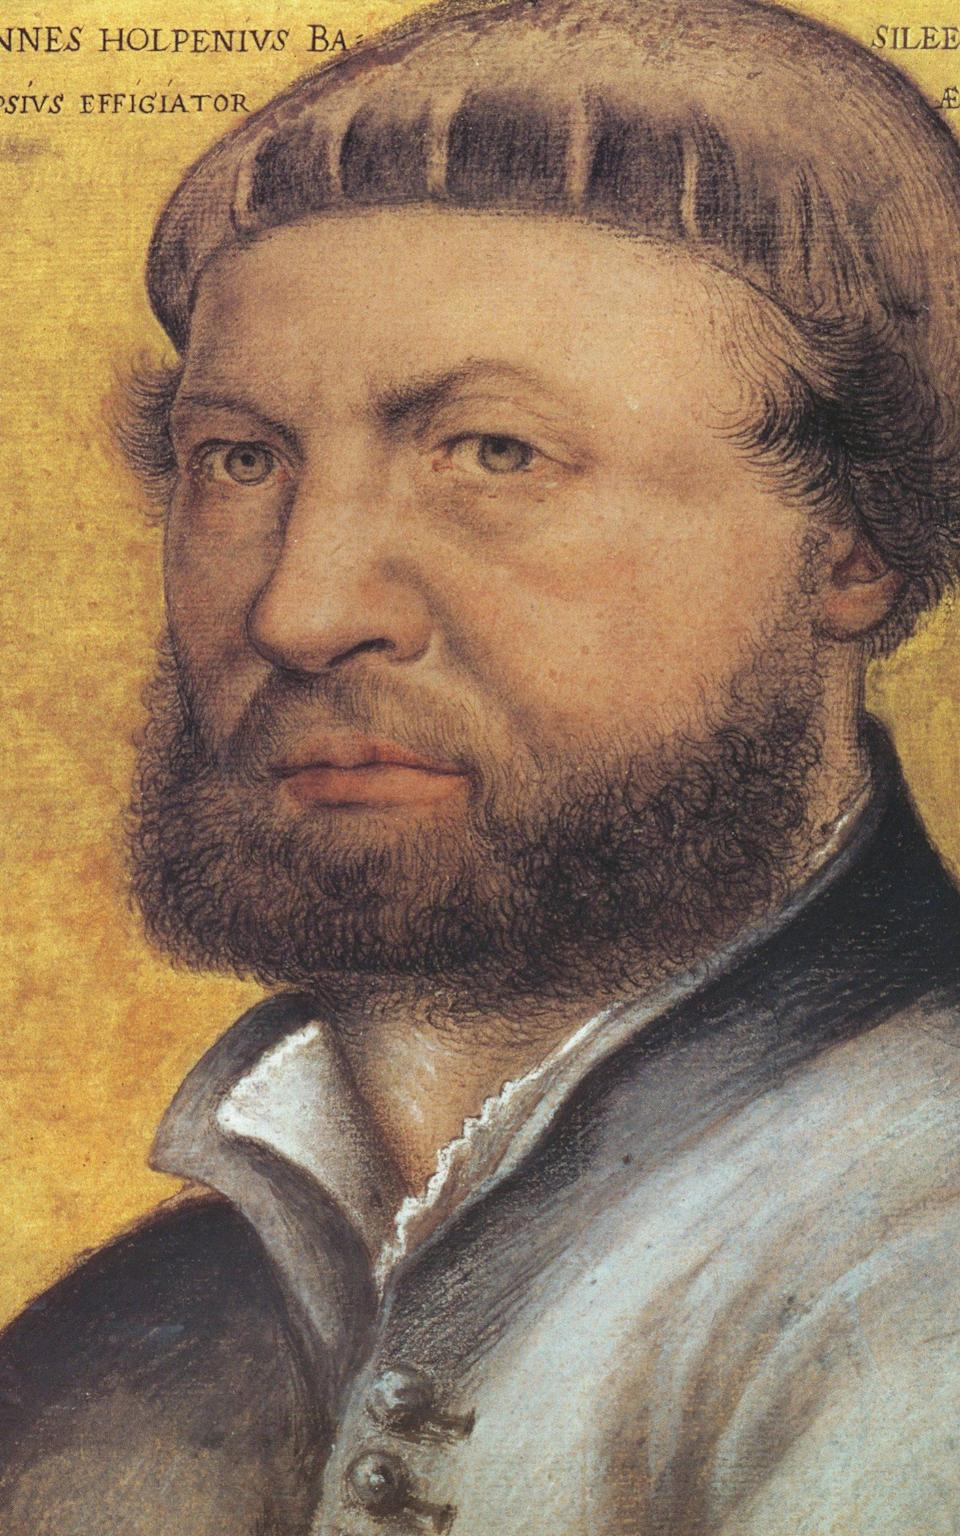 A later self-portrait by Holbein the Younger